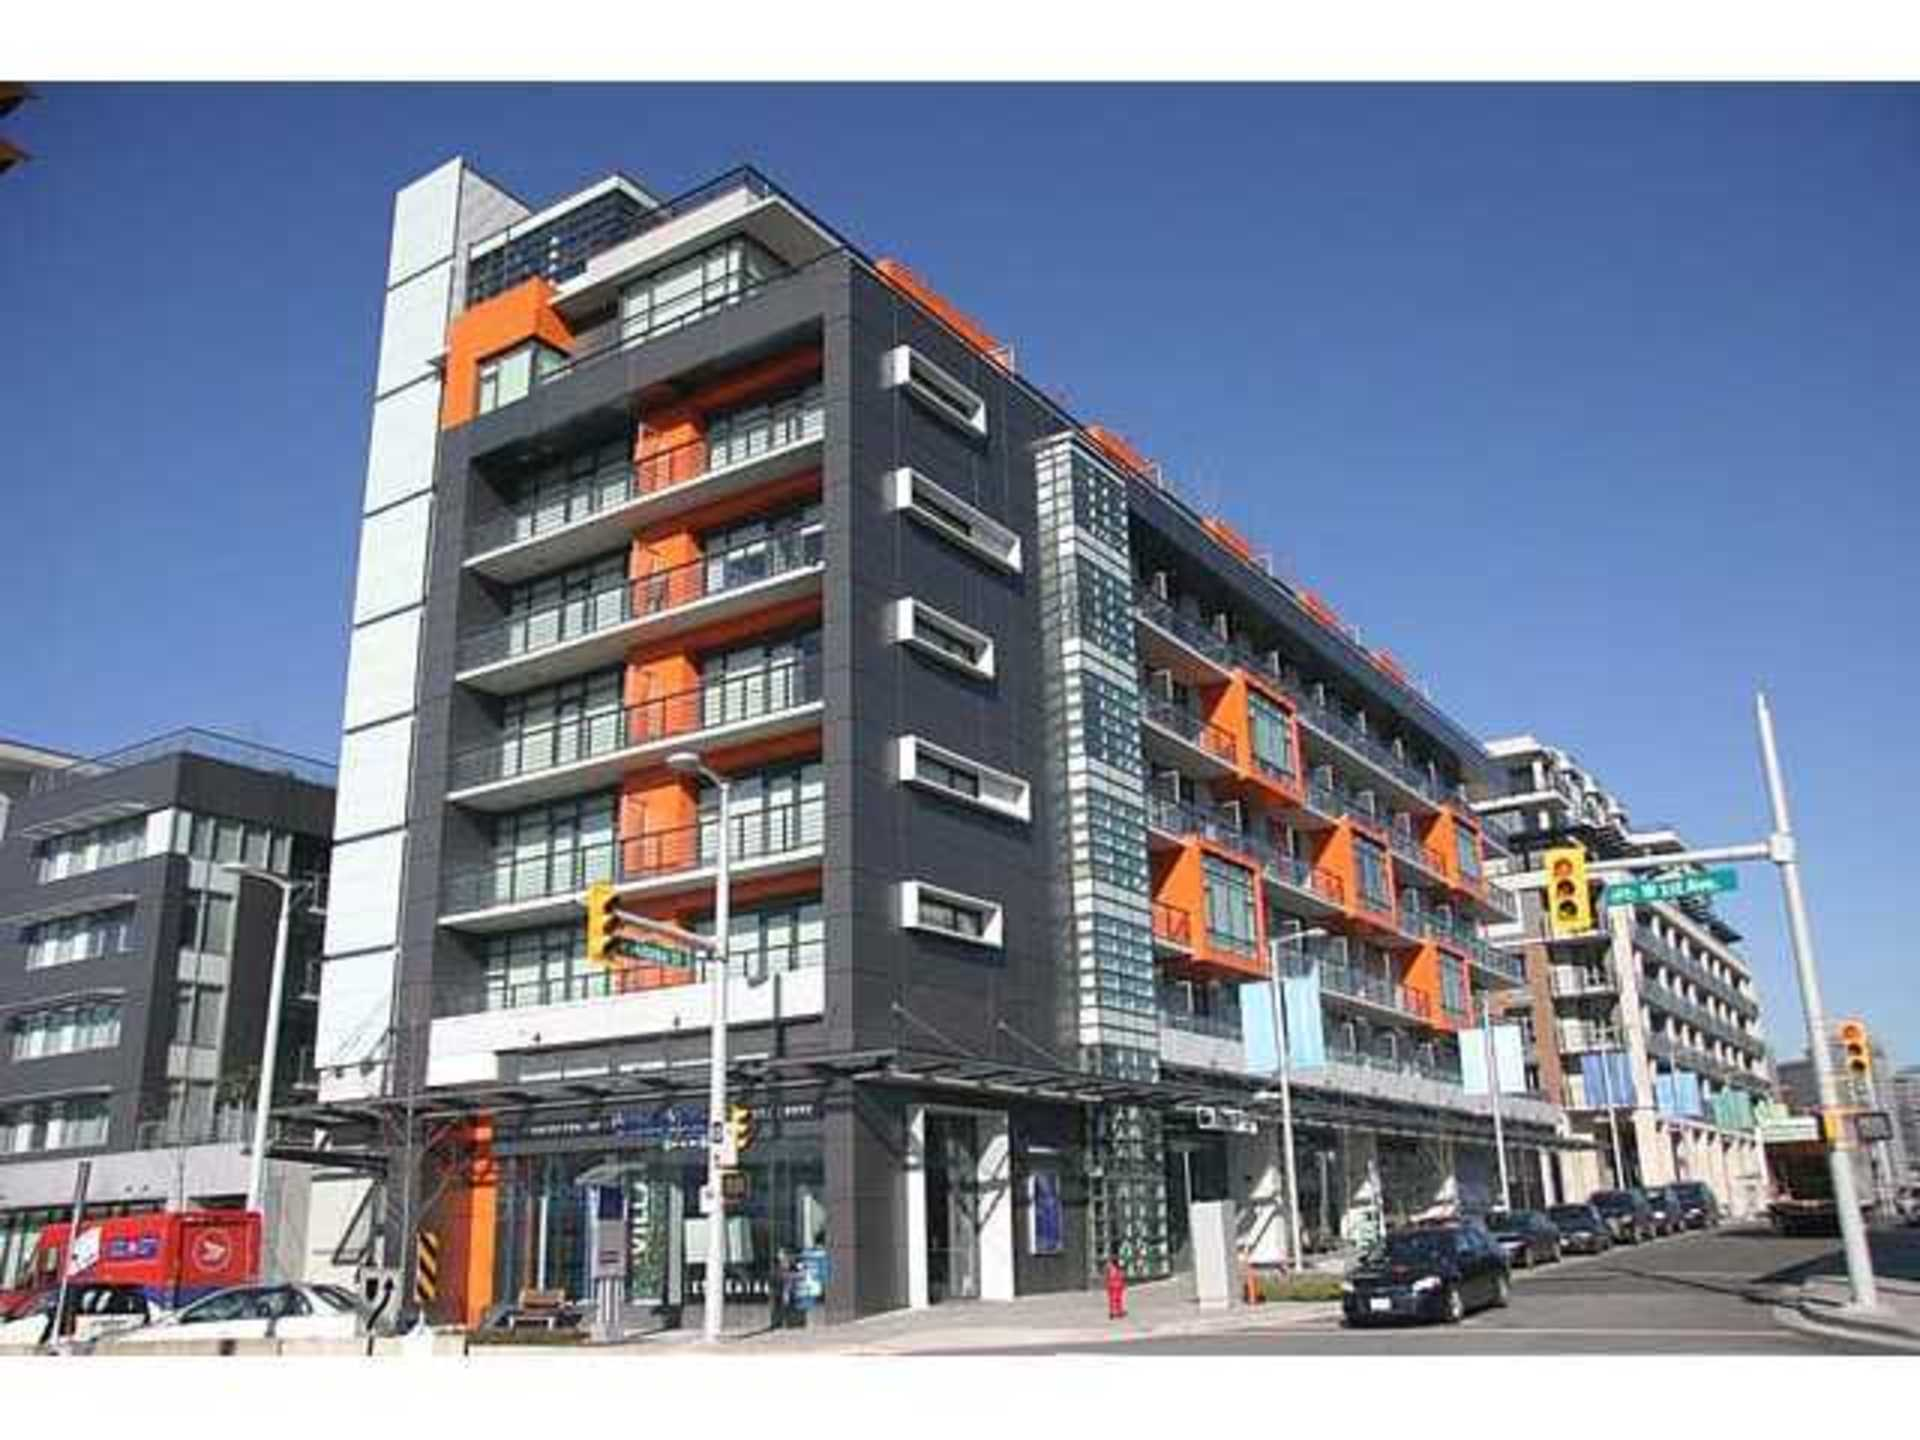 8744fa54c2e283fb5d690f69918e2bea at 123 W 1st Avenue, Olympic Village, Vancouver West